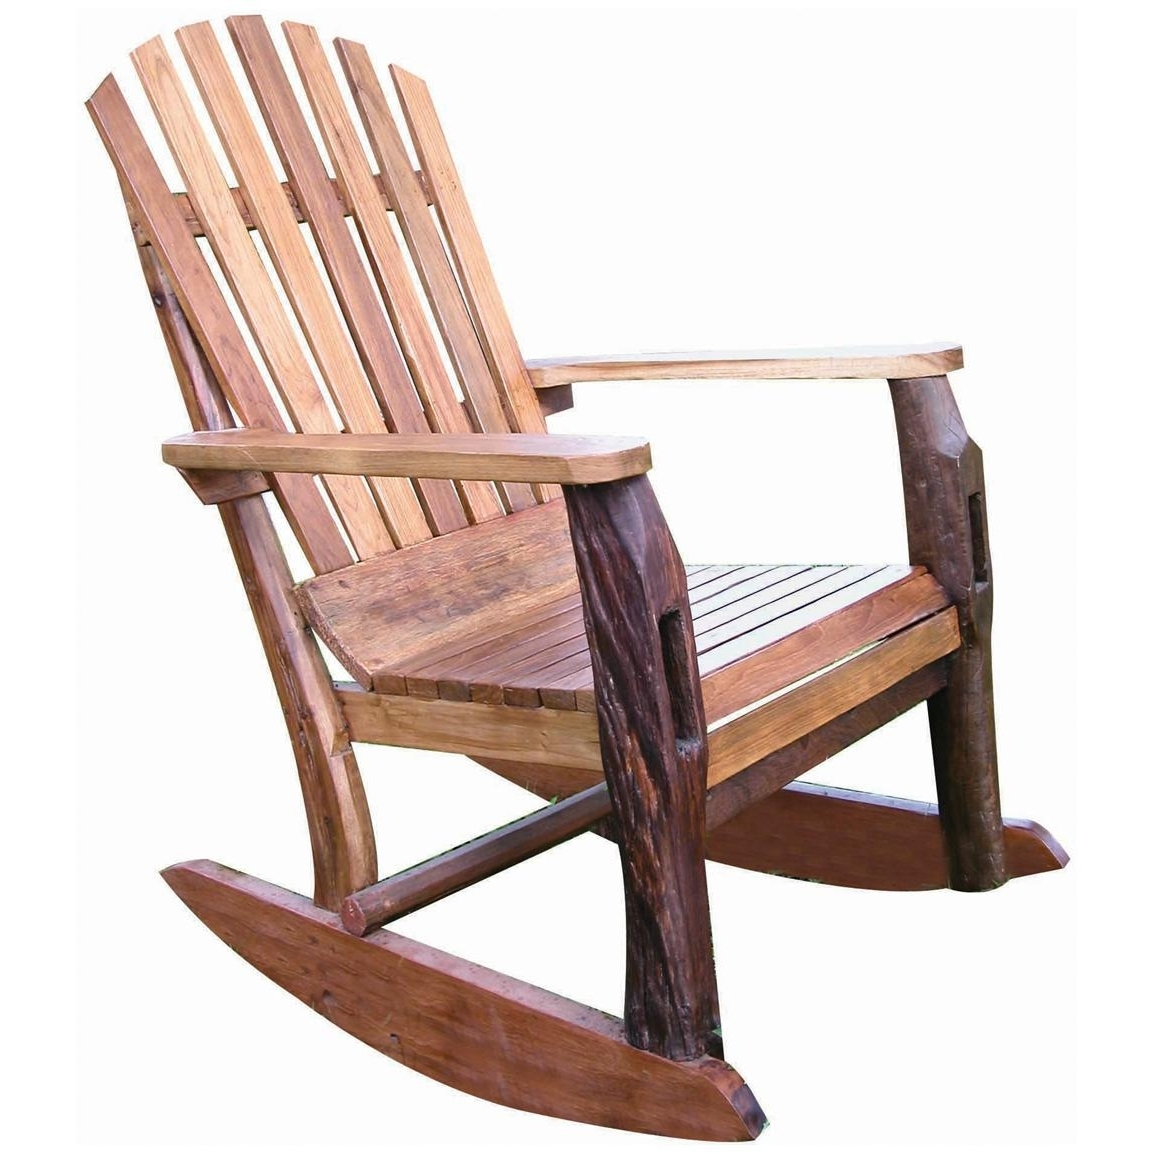 69 Rocking Chairs Outdoor, Outdoor Rocking Chairs Under 100 Home Regarding 2018 Wooden Patio Rocking Chairs (Gallery 13 of 15)